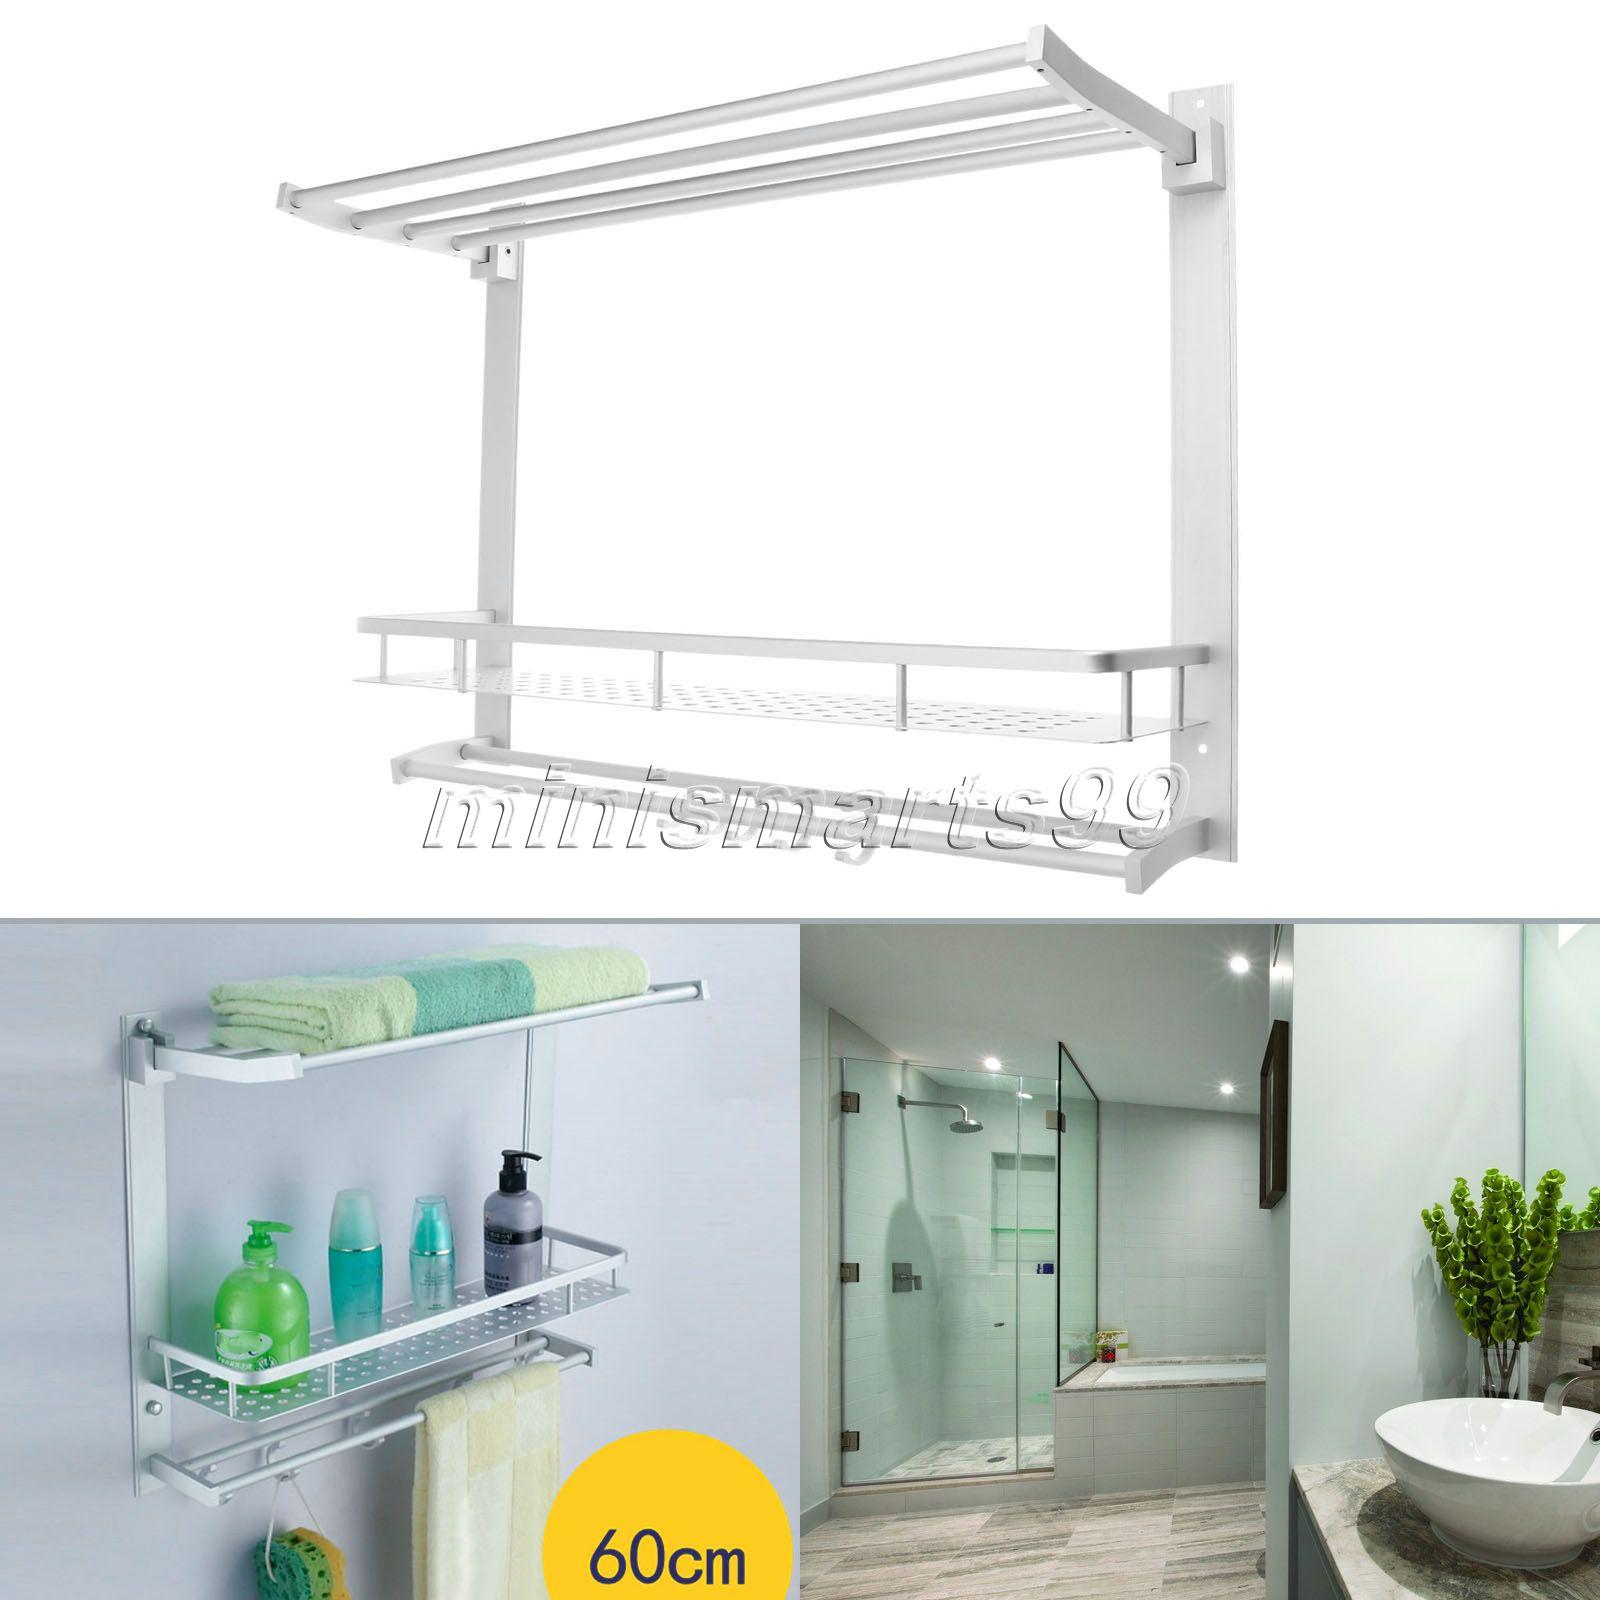 2018 60cm Double Layers Aluminum Bathroom Rack Towel Shelves Washing Shower Basket  Bathroom Accessories Shampoo Holder+Towel Bar+Hook From Blithenice, ...